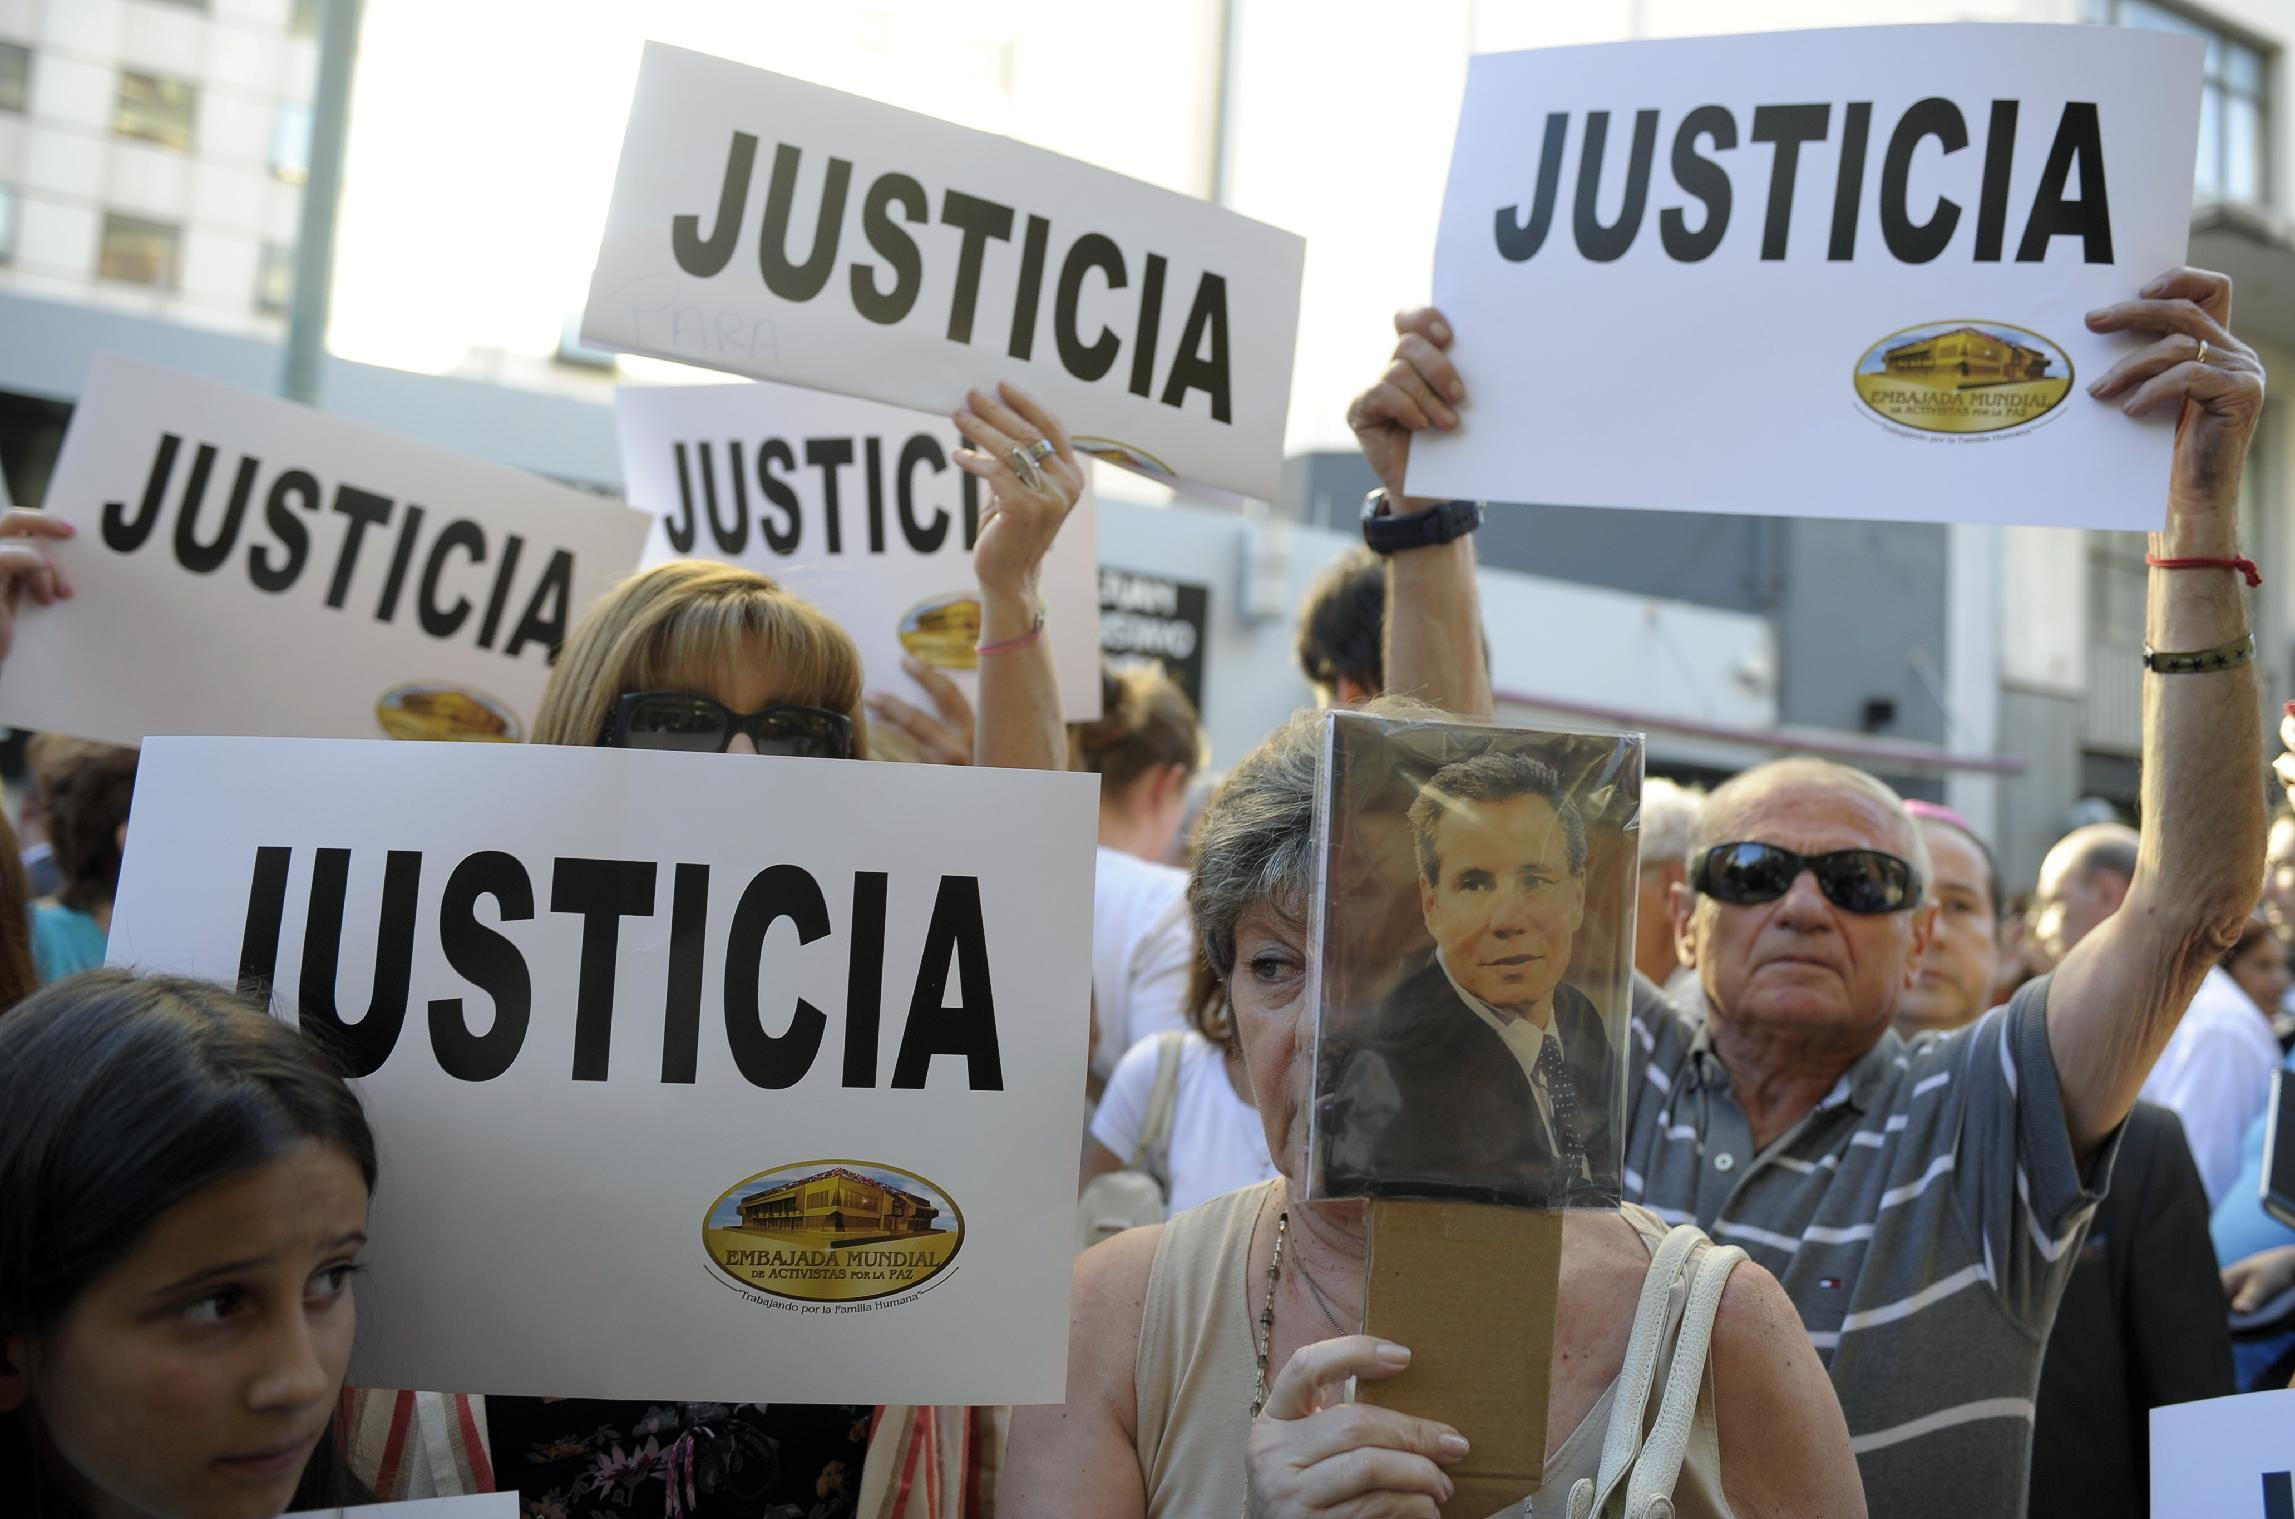 Reporter flees Argentina after threats in dead prosecutor case